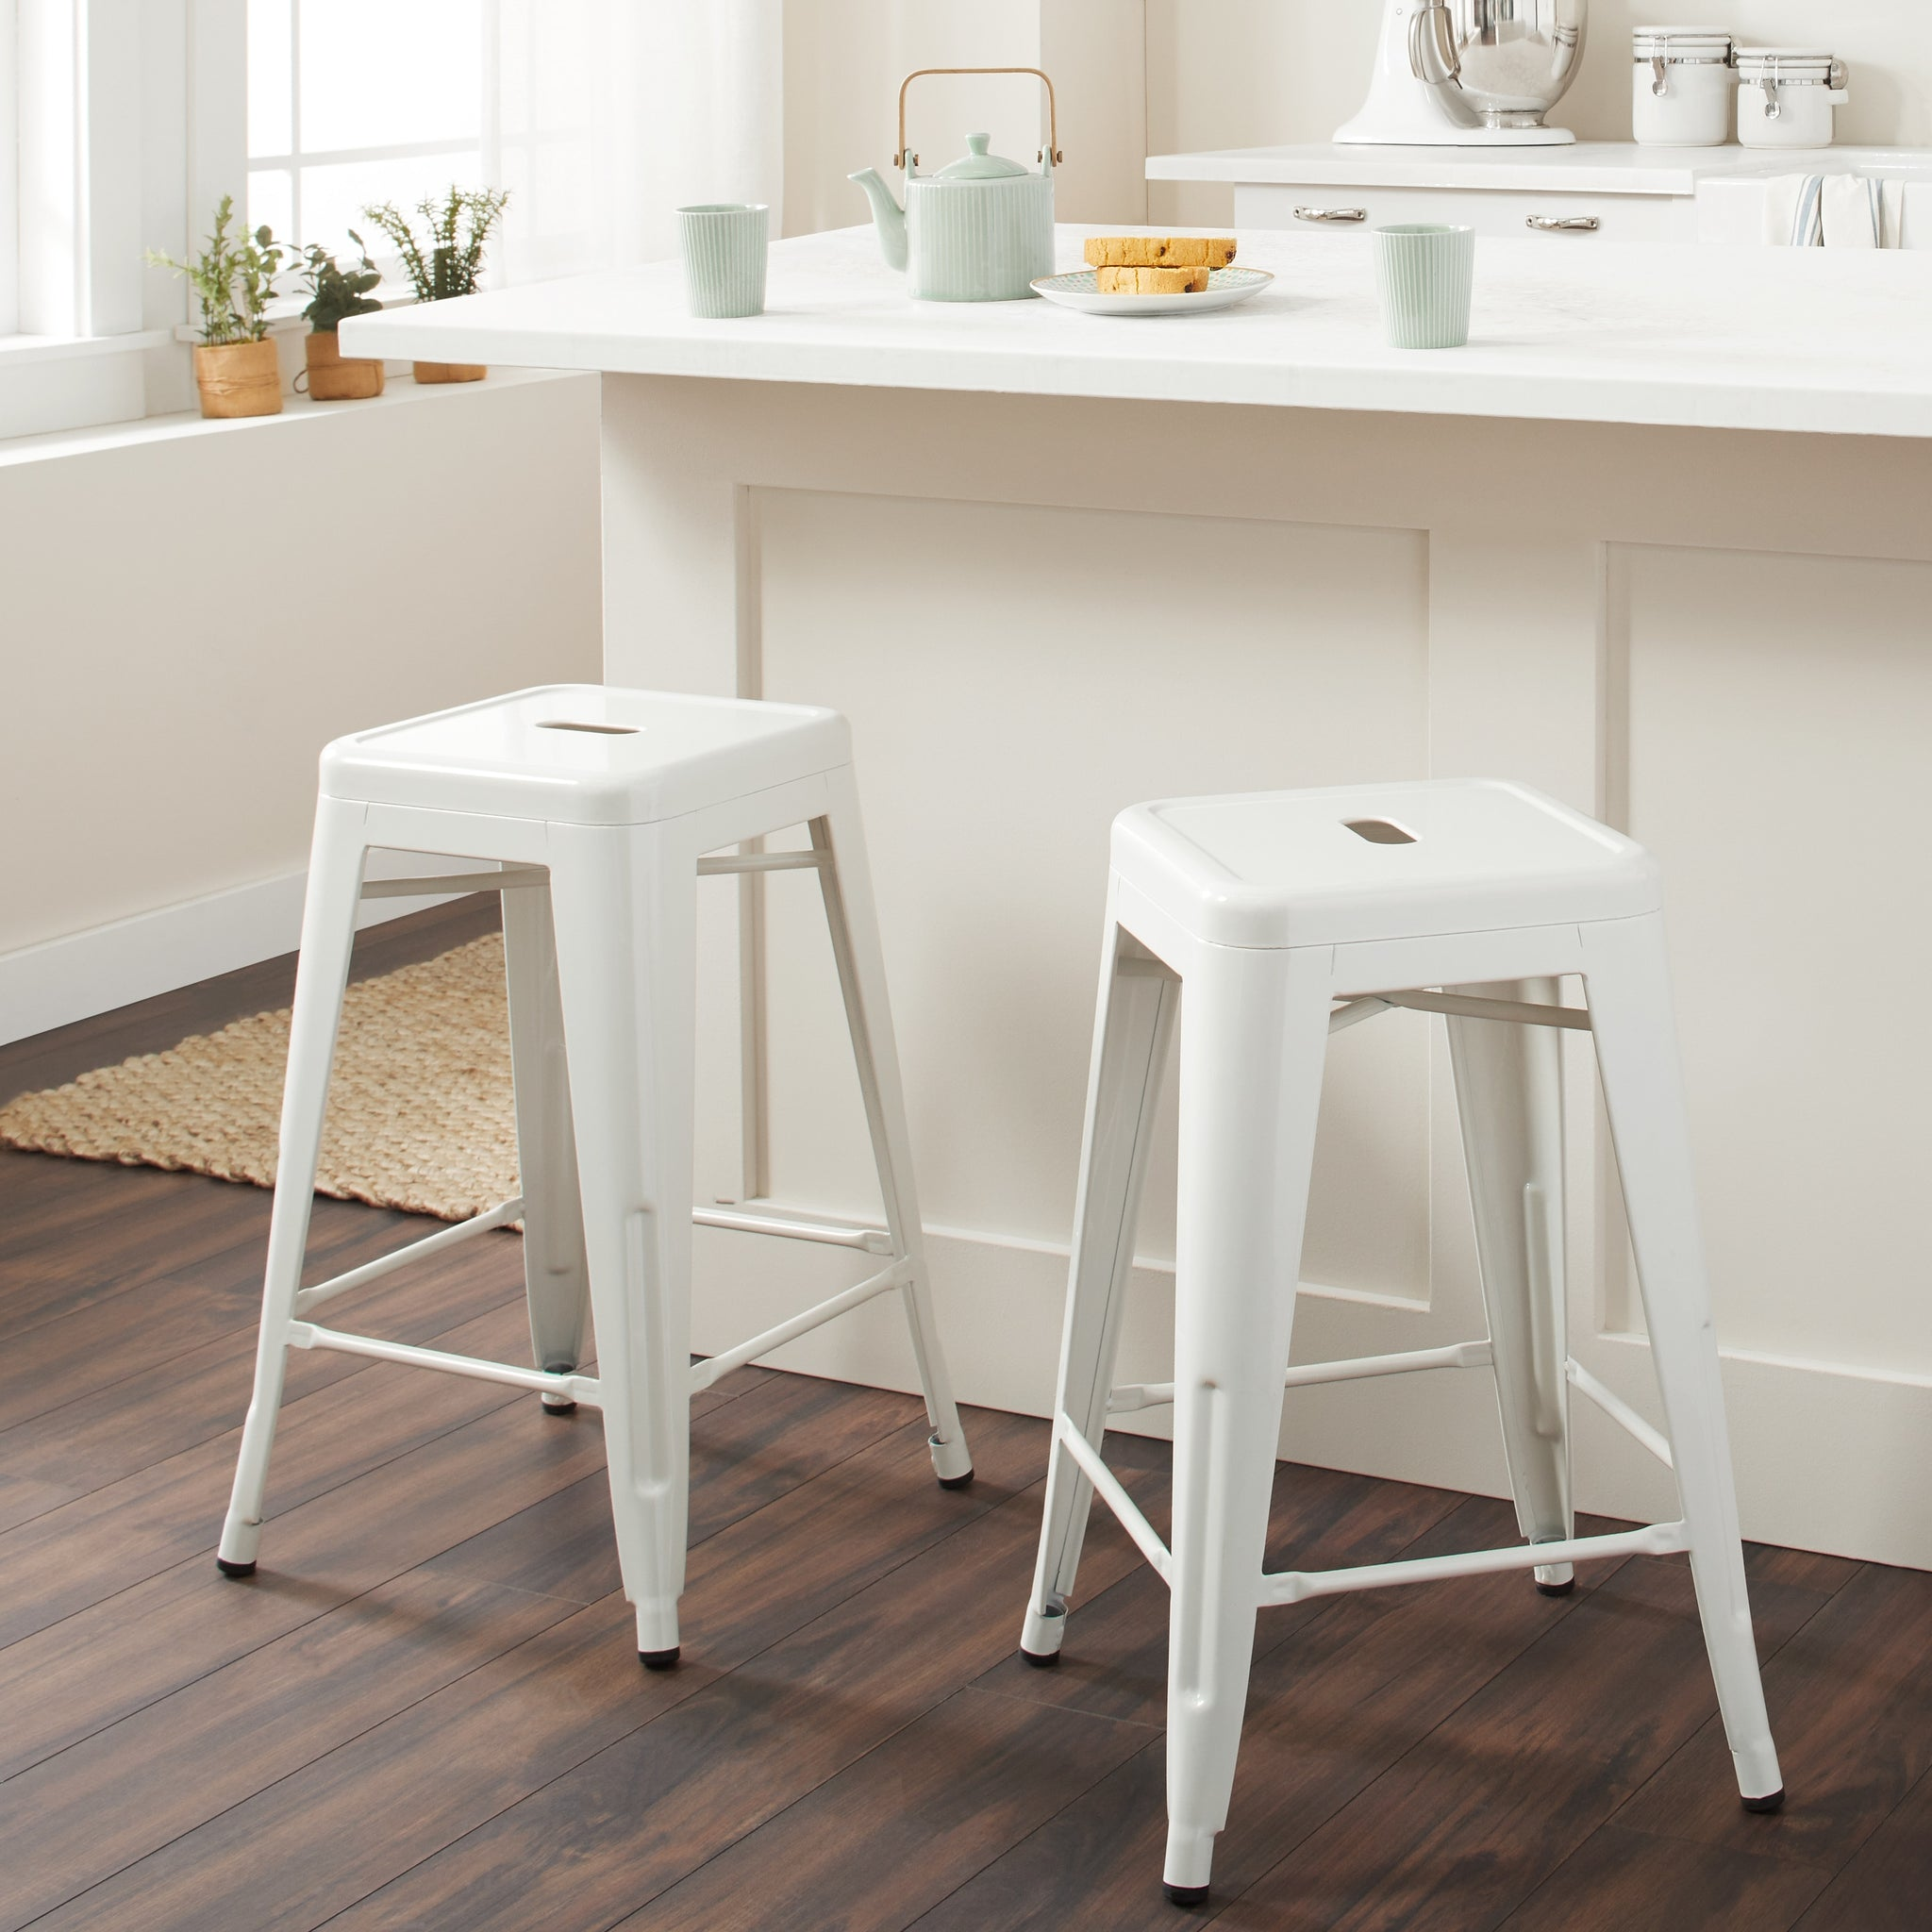 24 Inch White Metal Counter Stools Set Of 2 Handy